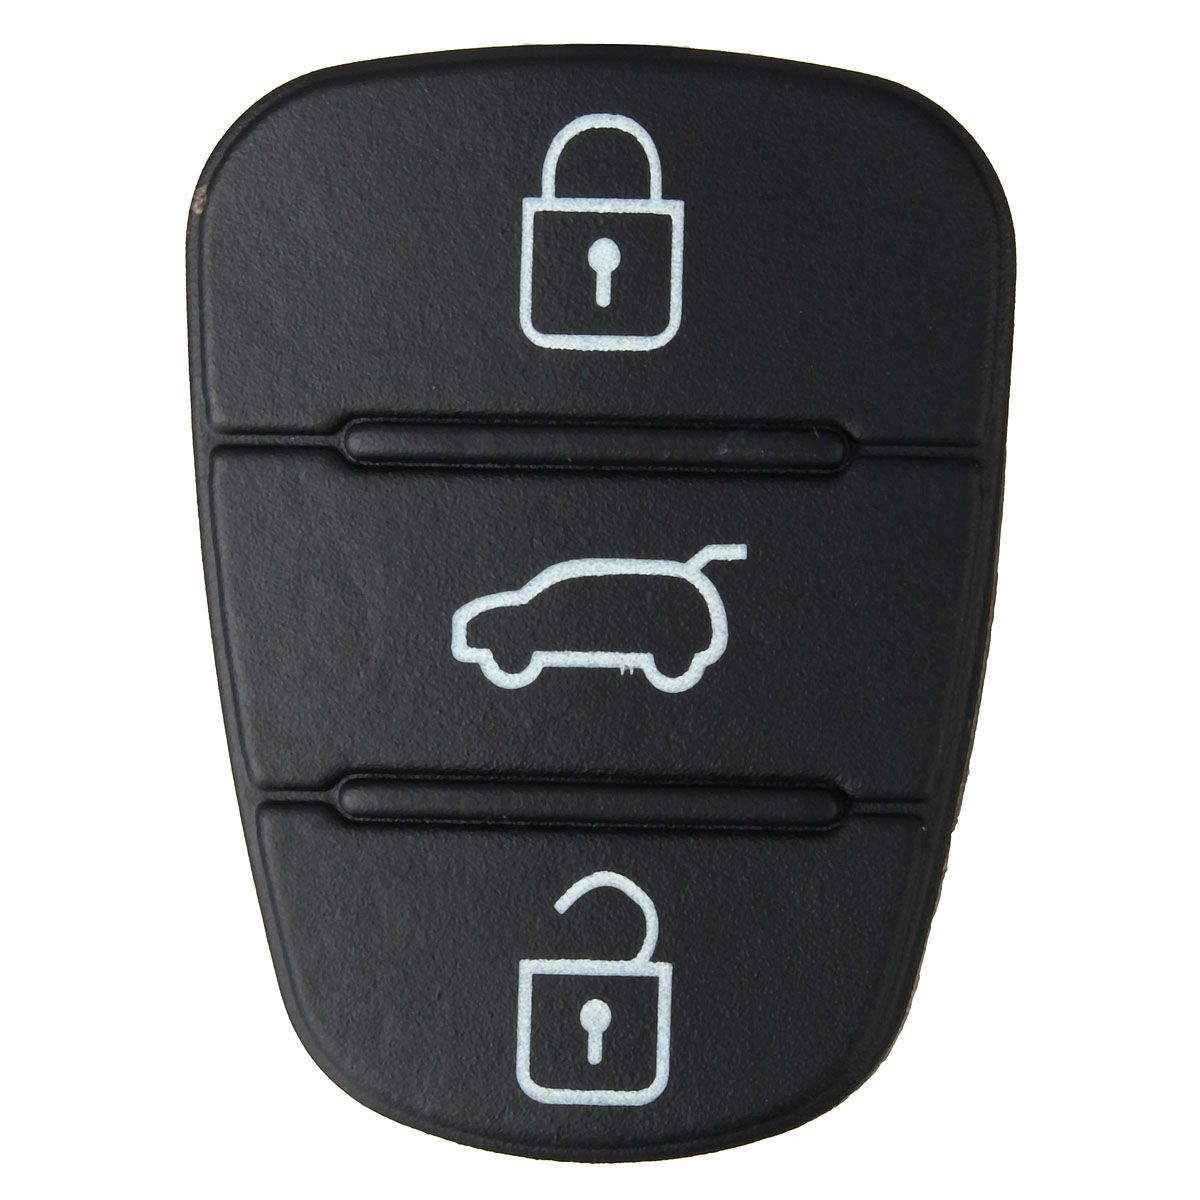 8PCS Non-Slip Interior Door Slot Rubber Cup Pads Holder Mat Rubber for Volvo S60